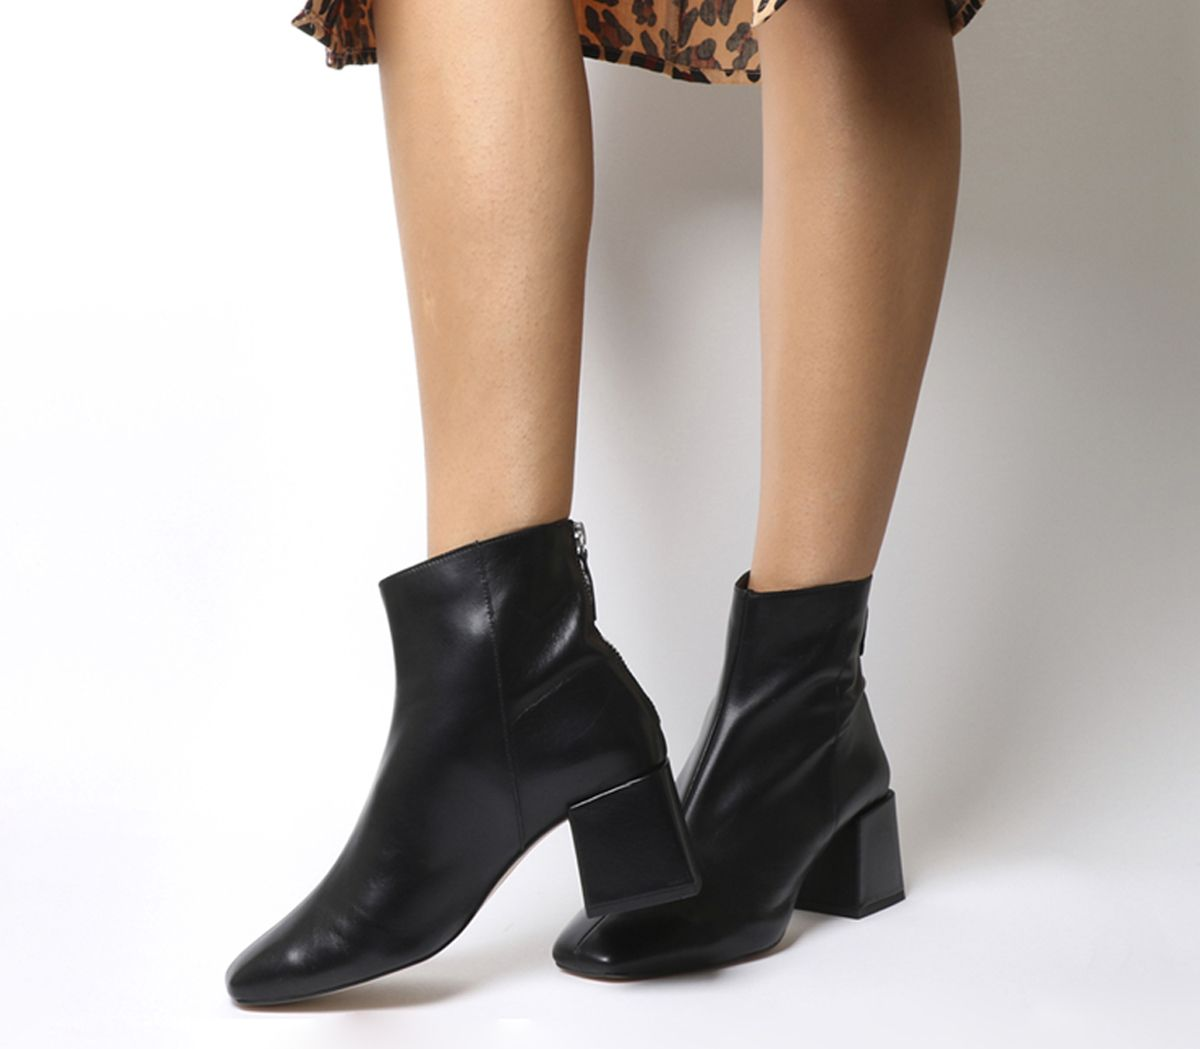 d357b840b56 Office Apricot Square Toe Block Heel Boots Black Leather - Ankle Boots